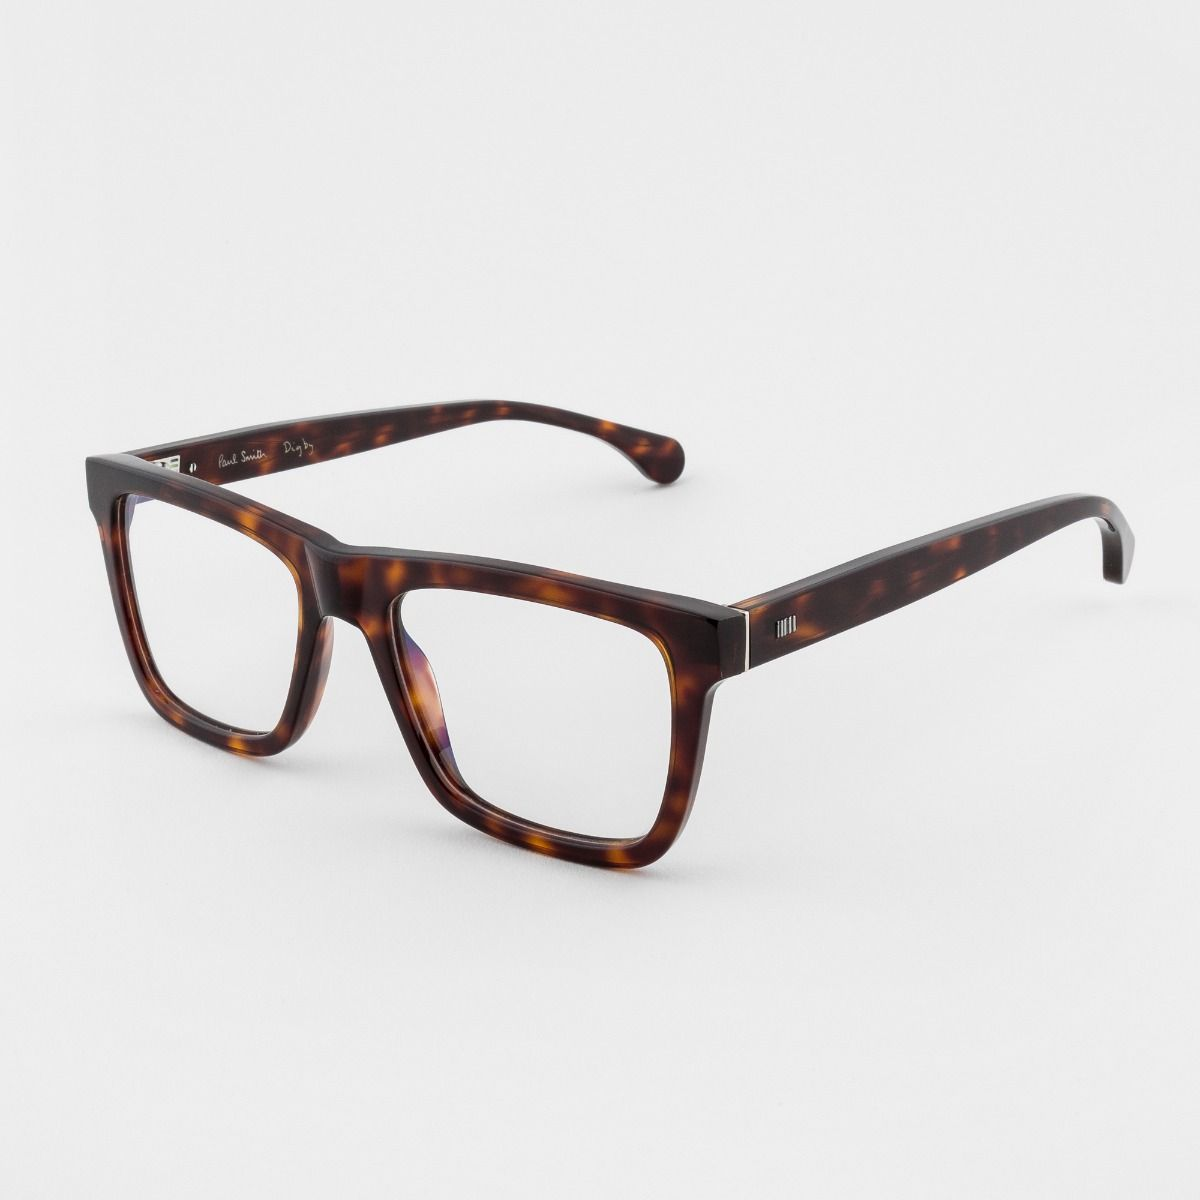 Paul Smith Digby Optical Square Glasses